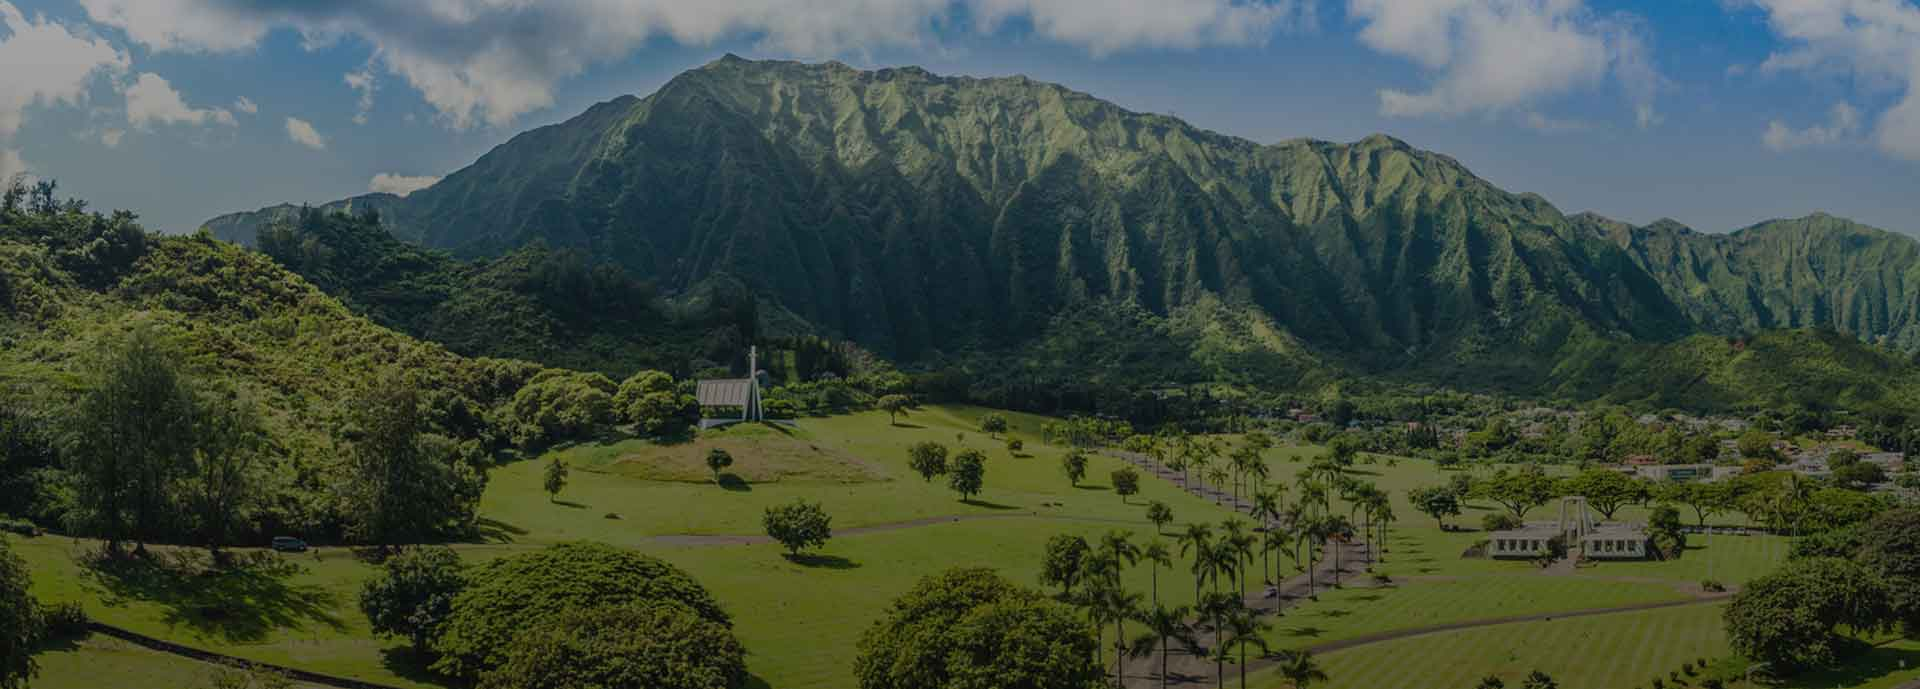 Valley of the Temples Memorial Park - Kaneohe, HI